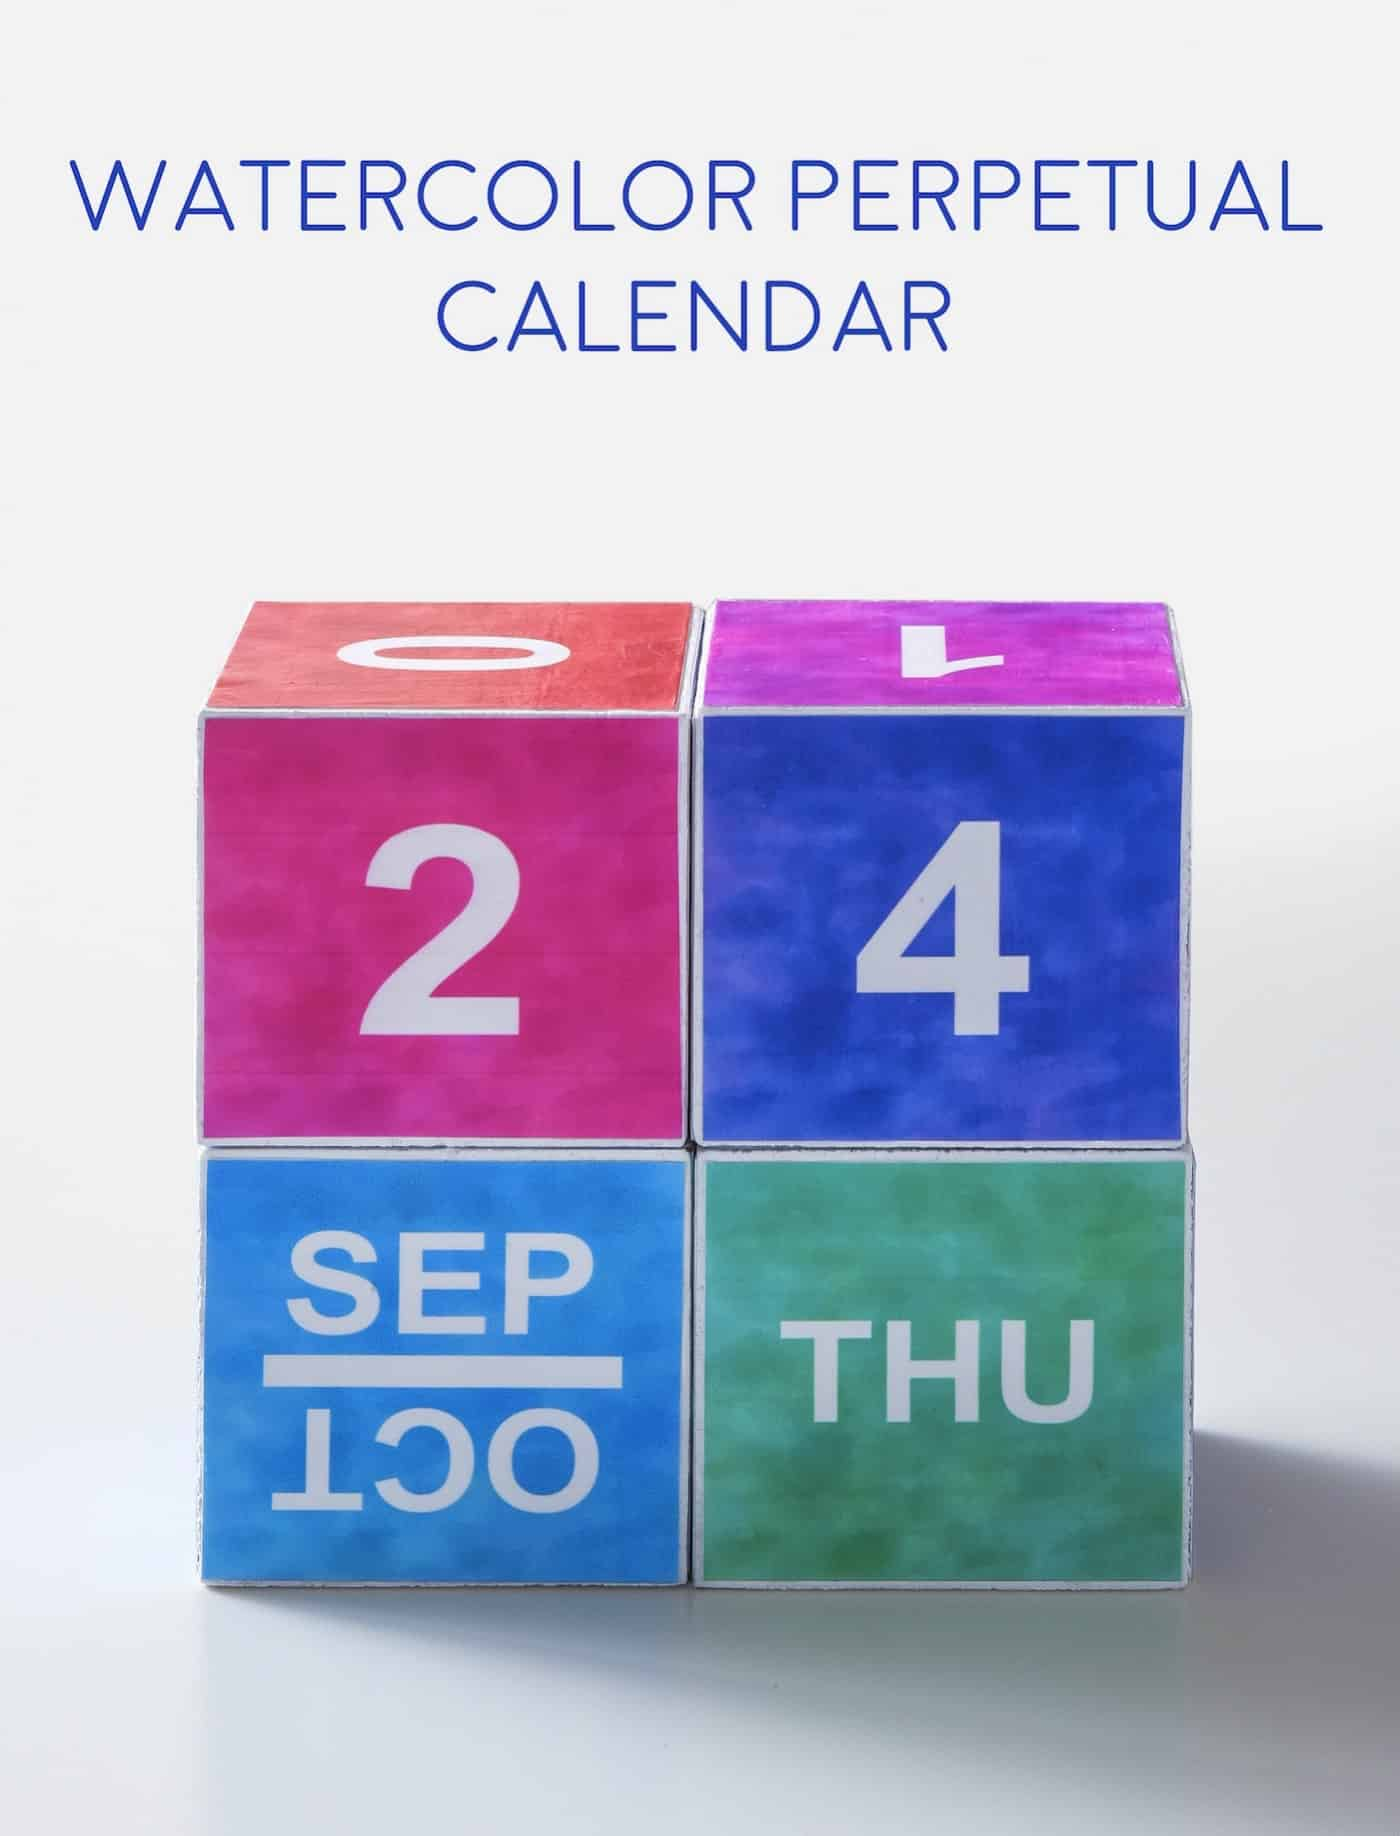 photograph relating to Perpetual Calendar Printable named Watercolor Perpetual Calendar (with Absolutely free Printable) - Mod